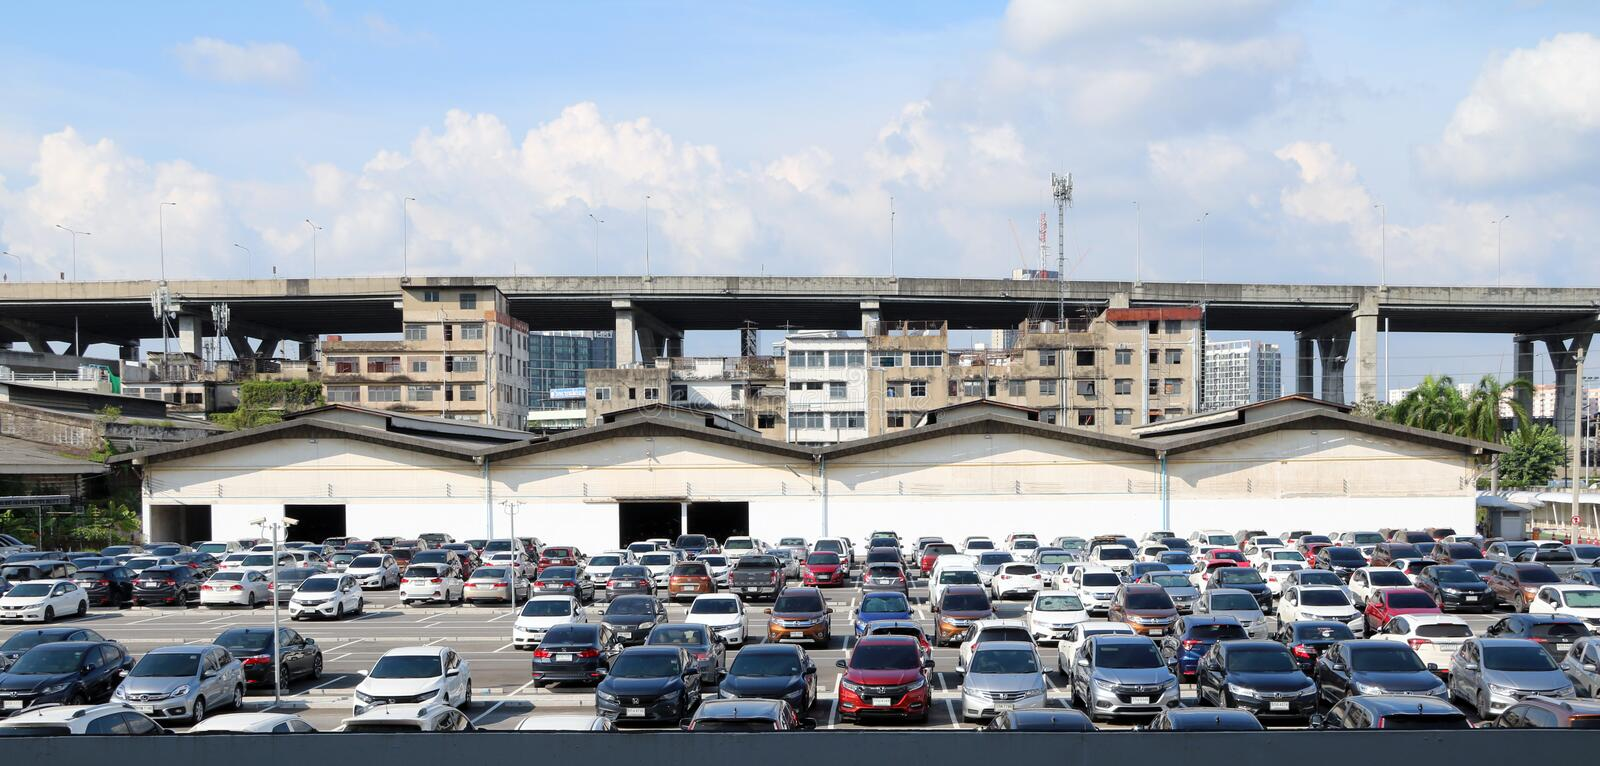 Many cars are parked at the outdoor parking lot with garage building and taller building, Expressway and blue sky. Bang Na, Bangkok, Thailand, Oct 16, 2018 stock images